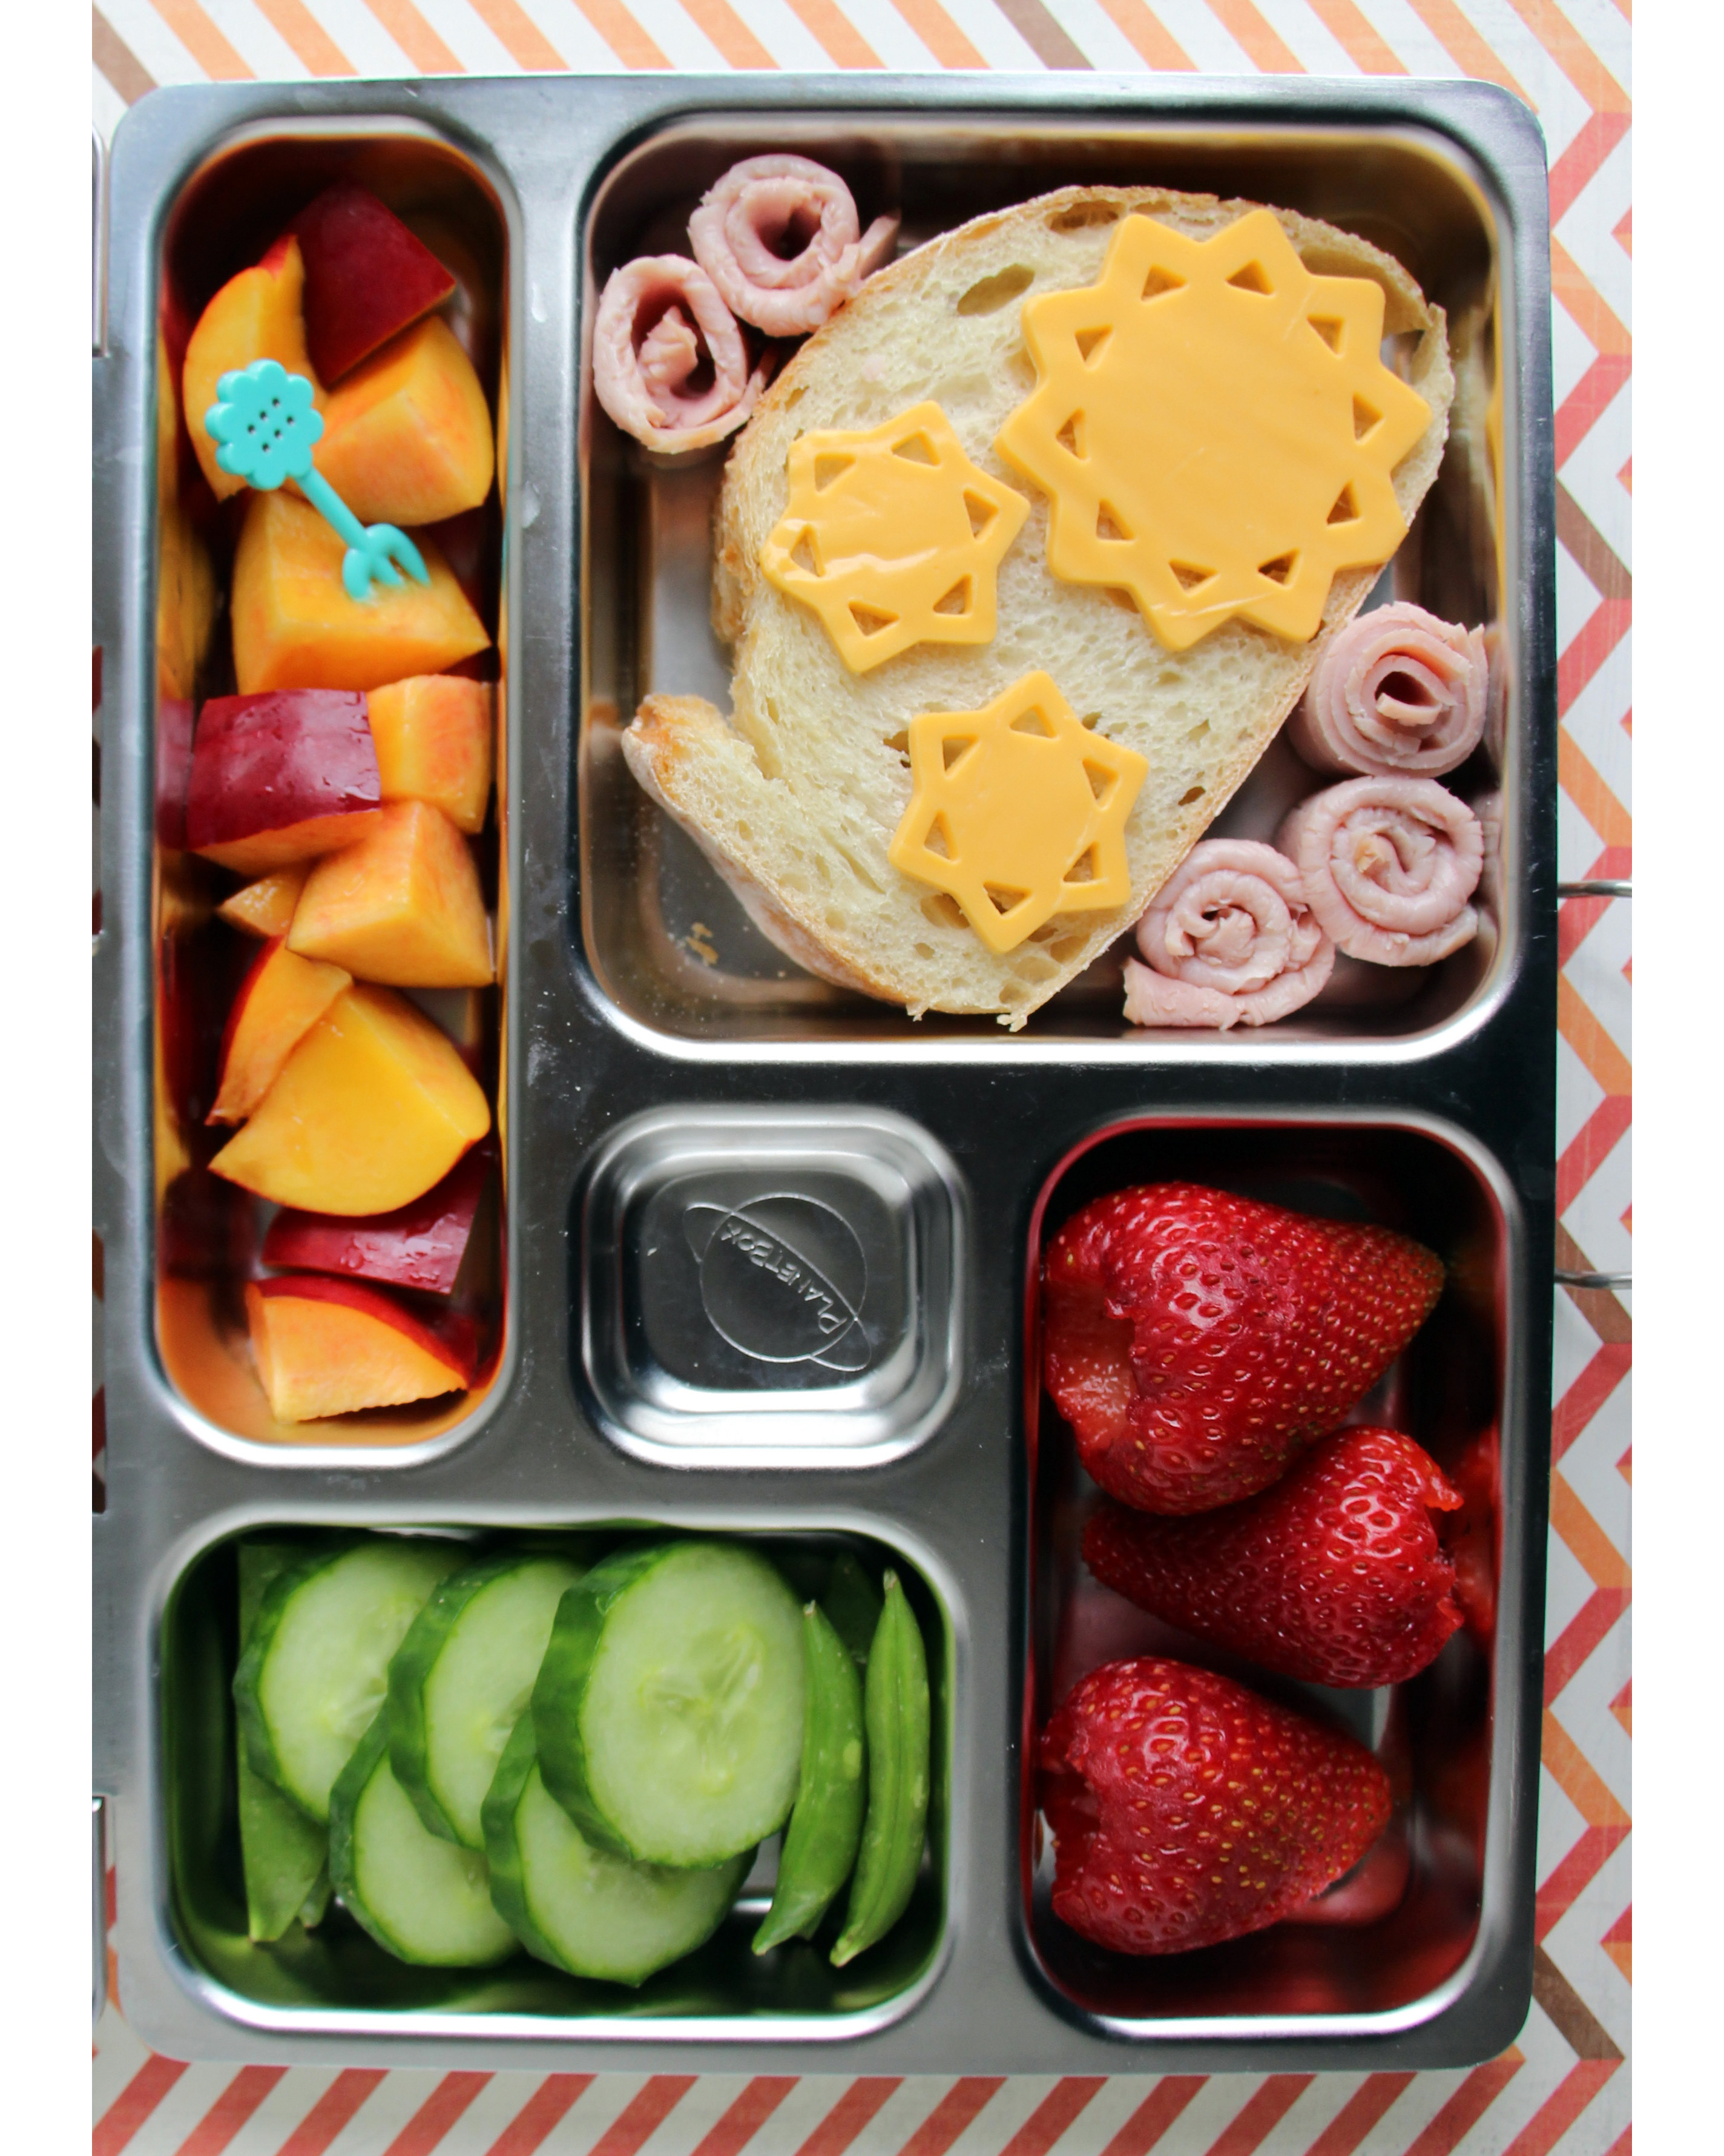 bento box strawberries cucumbers sandwich cheese sunshine